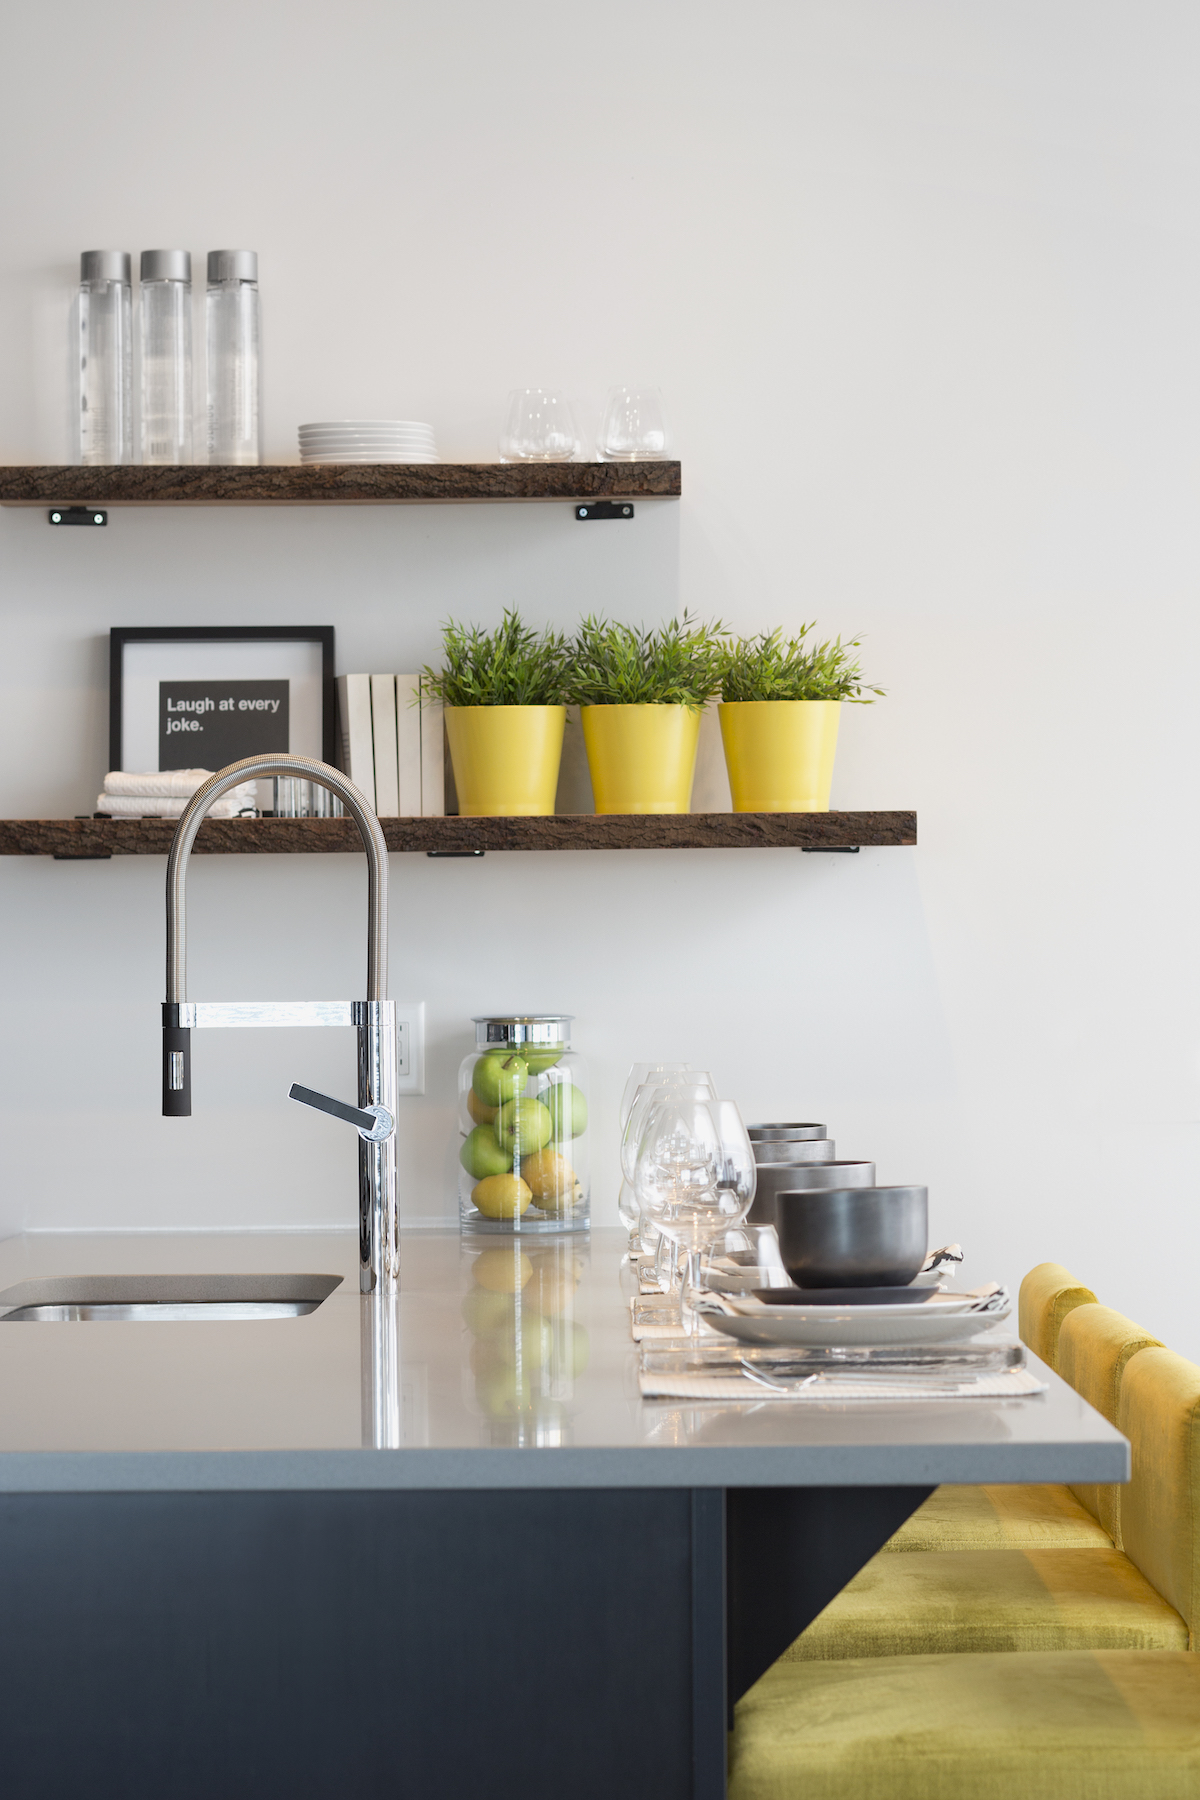 Kitchen with open shelving and plants